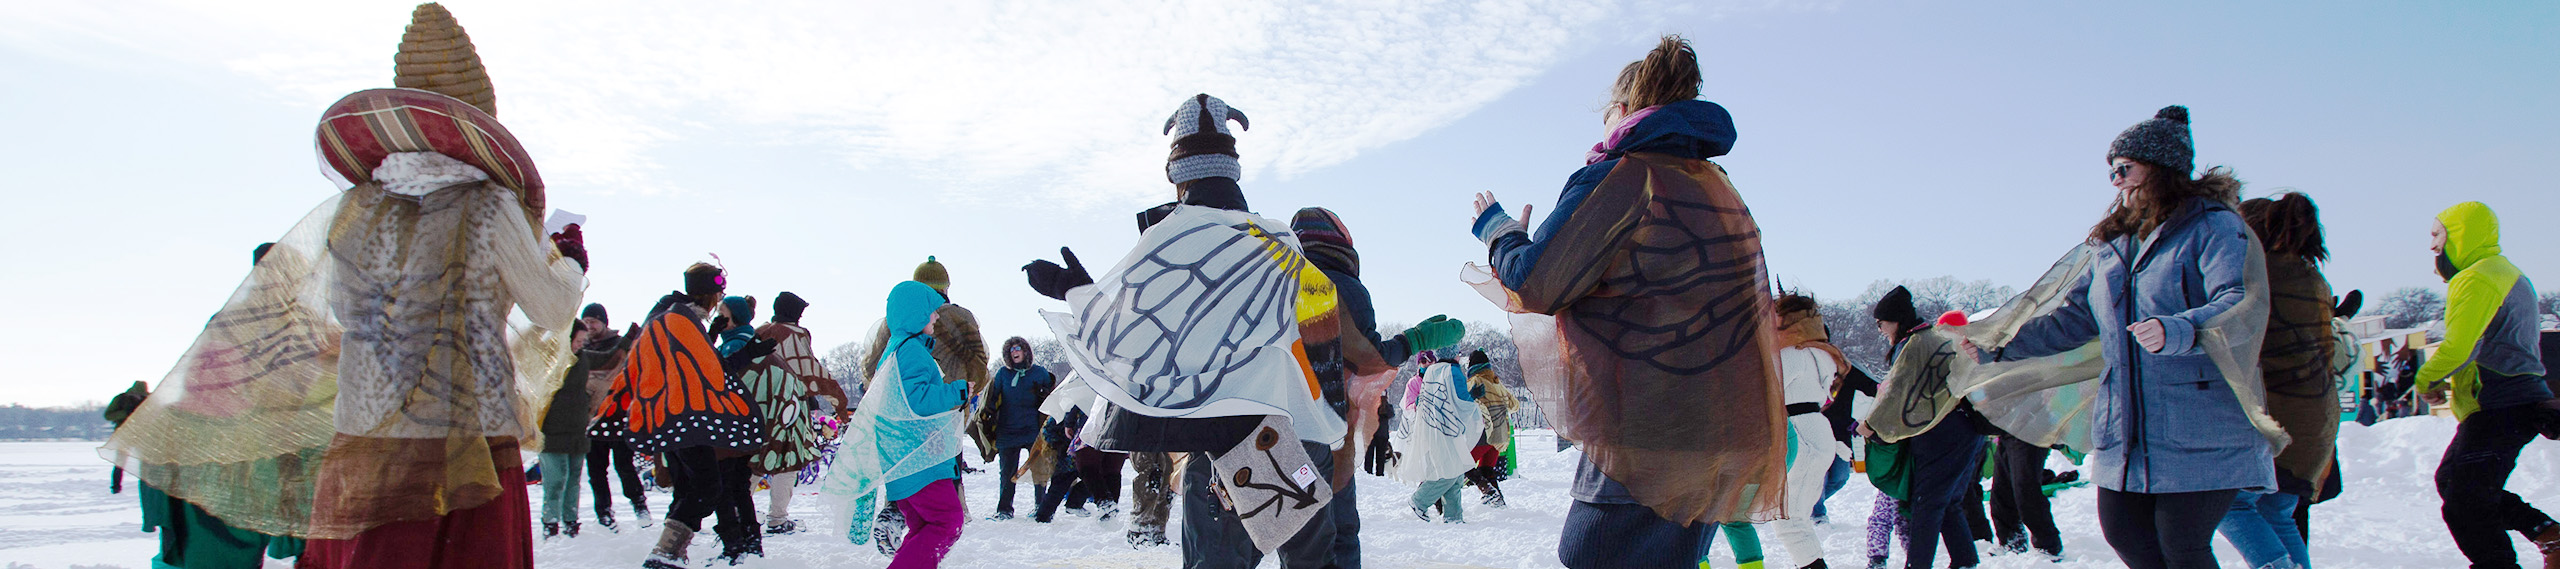 A crowd of people dance around in butterfly wings on a snow-covered lake